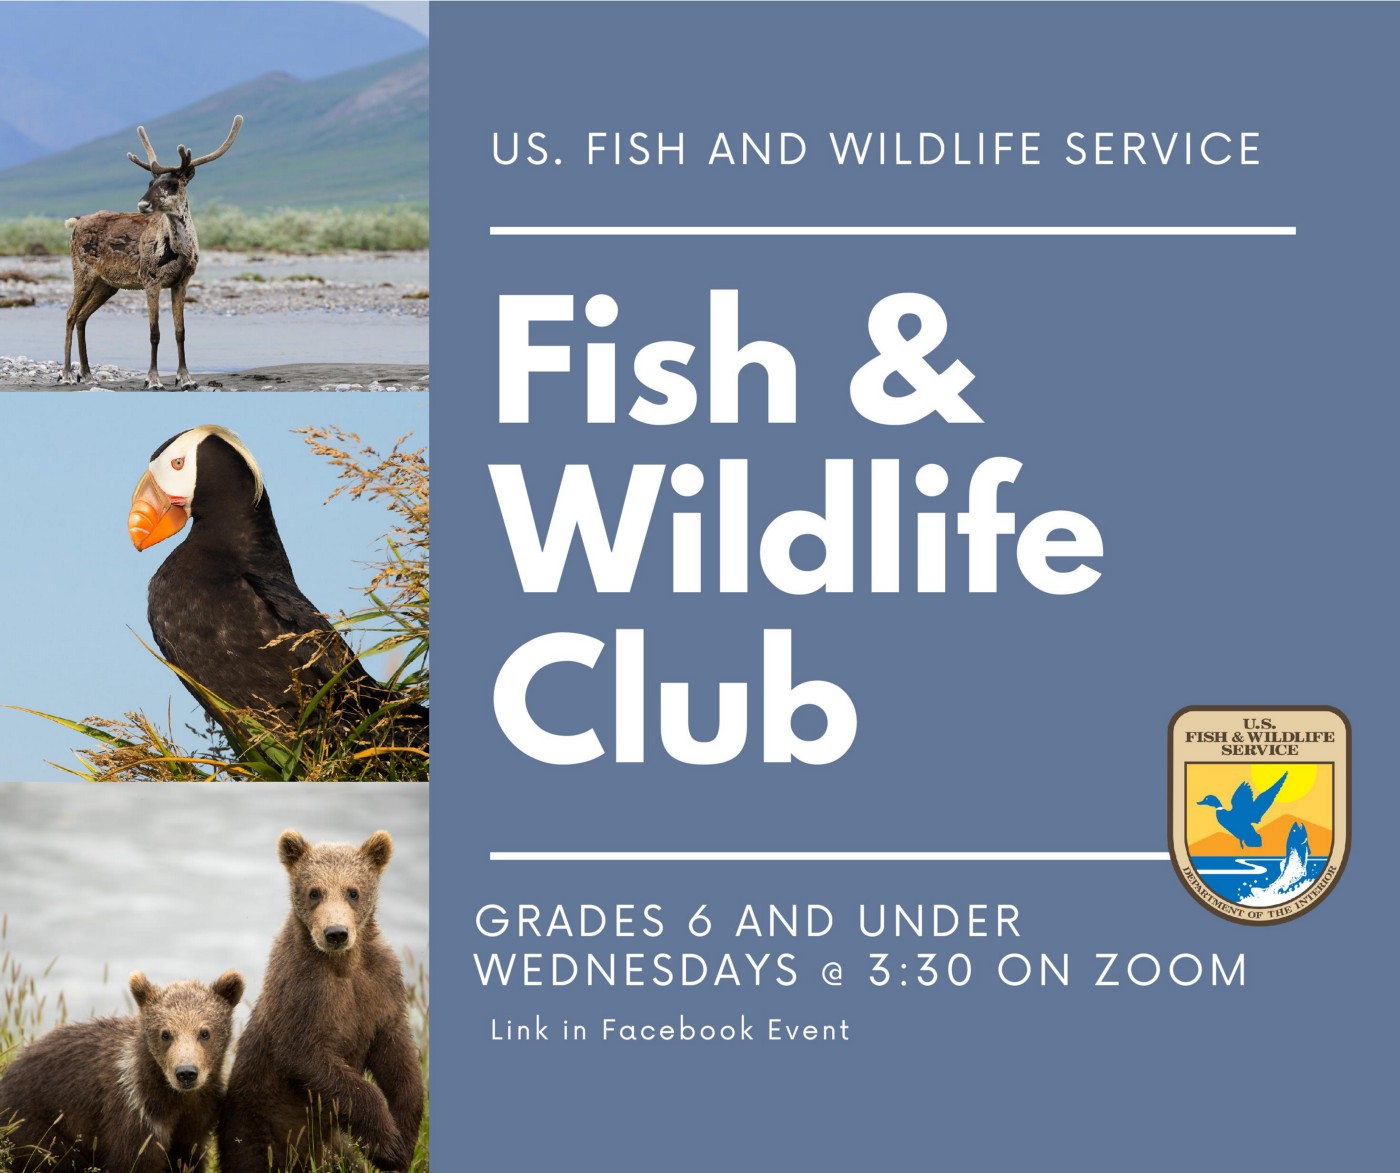 Poster with images of caribou, tufted puffin, and brown bear cubs, with text advertising the Fish and Wildlife Club program.